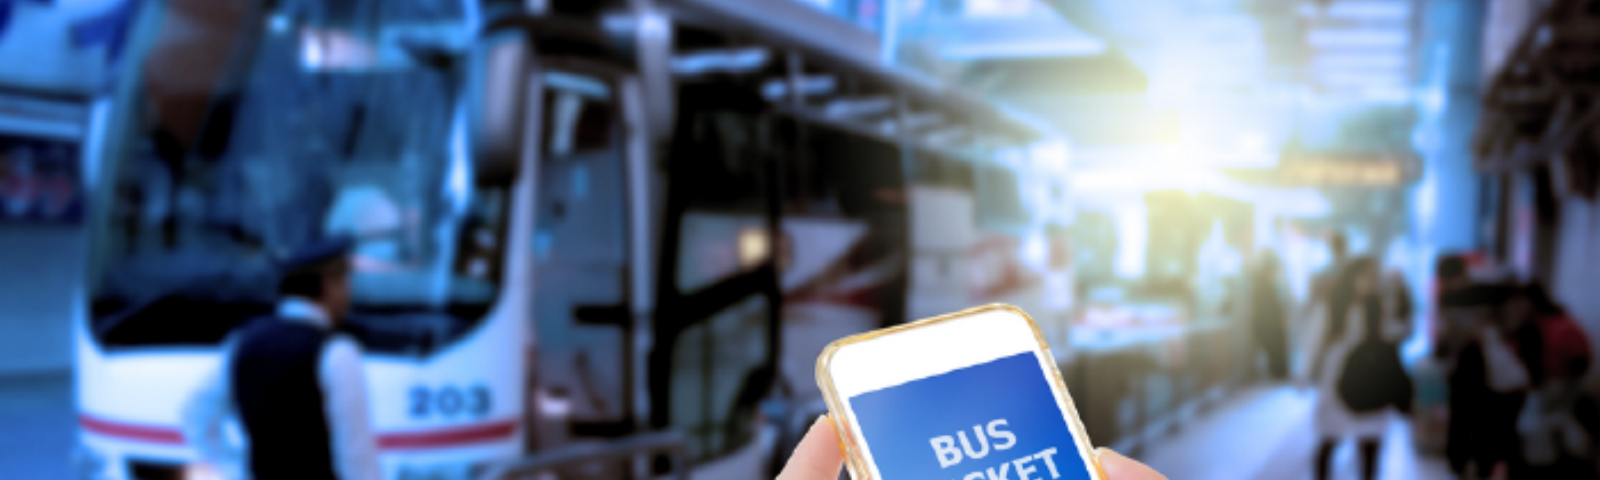 Things to check while booking a bus ticket online